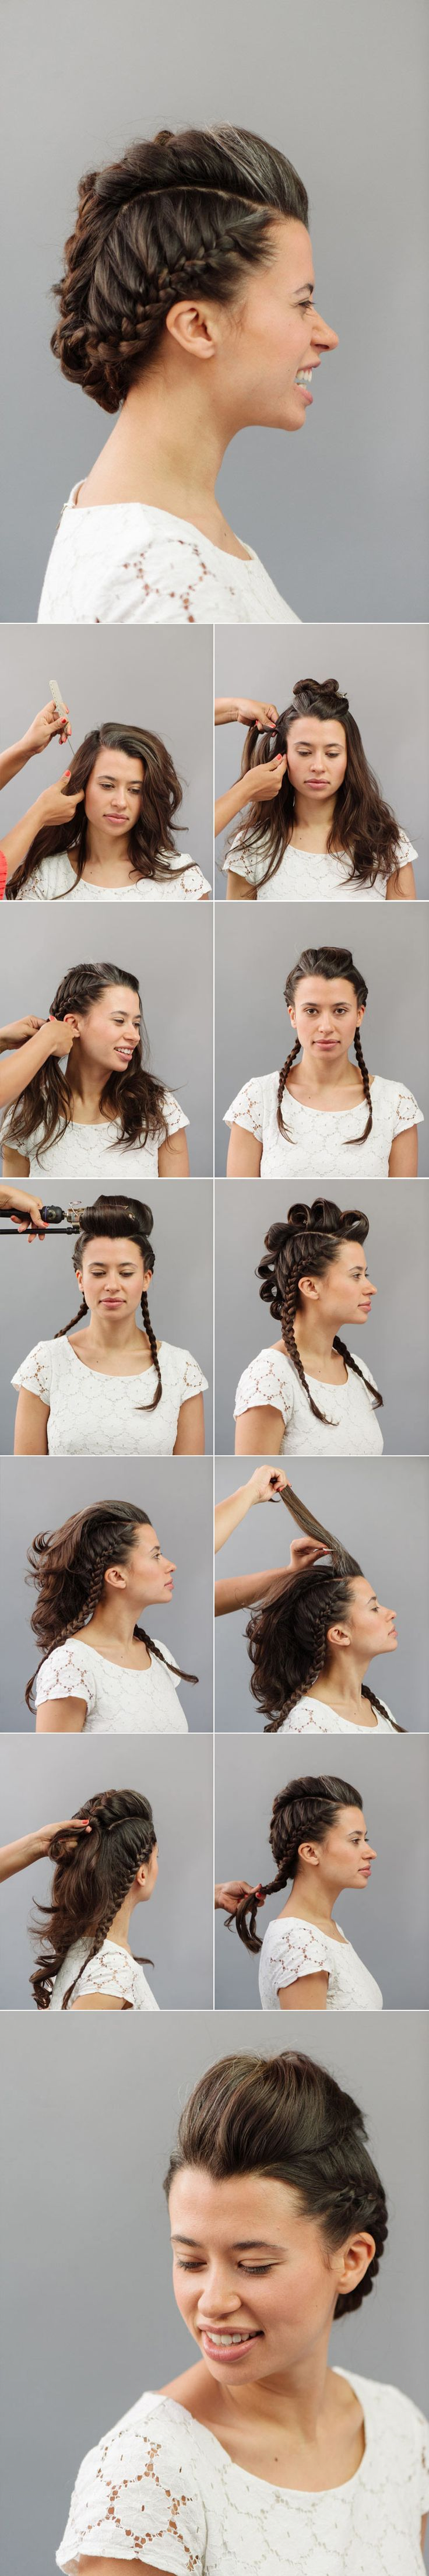 best hairstyles cool hair images on pinterest braids hairdos